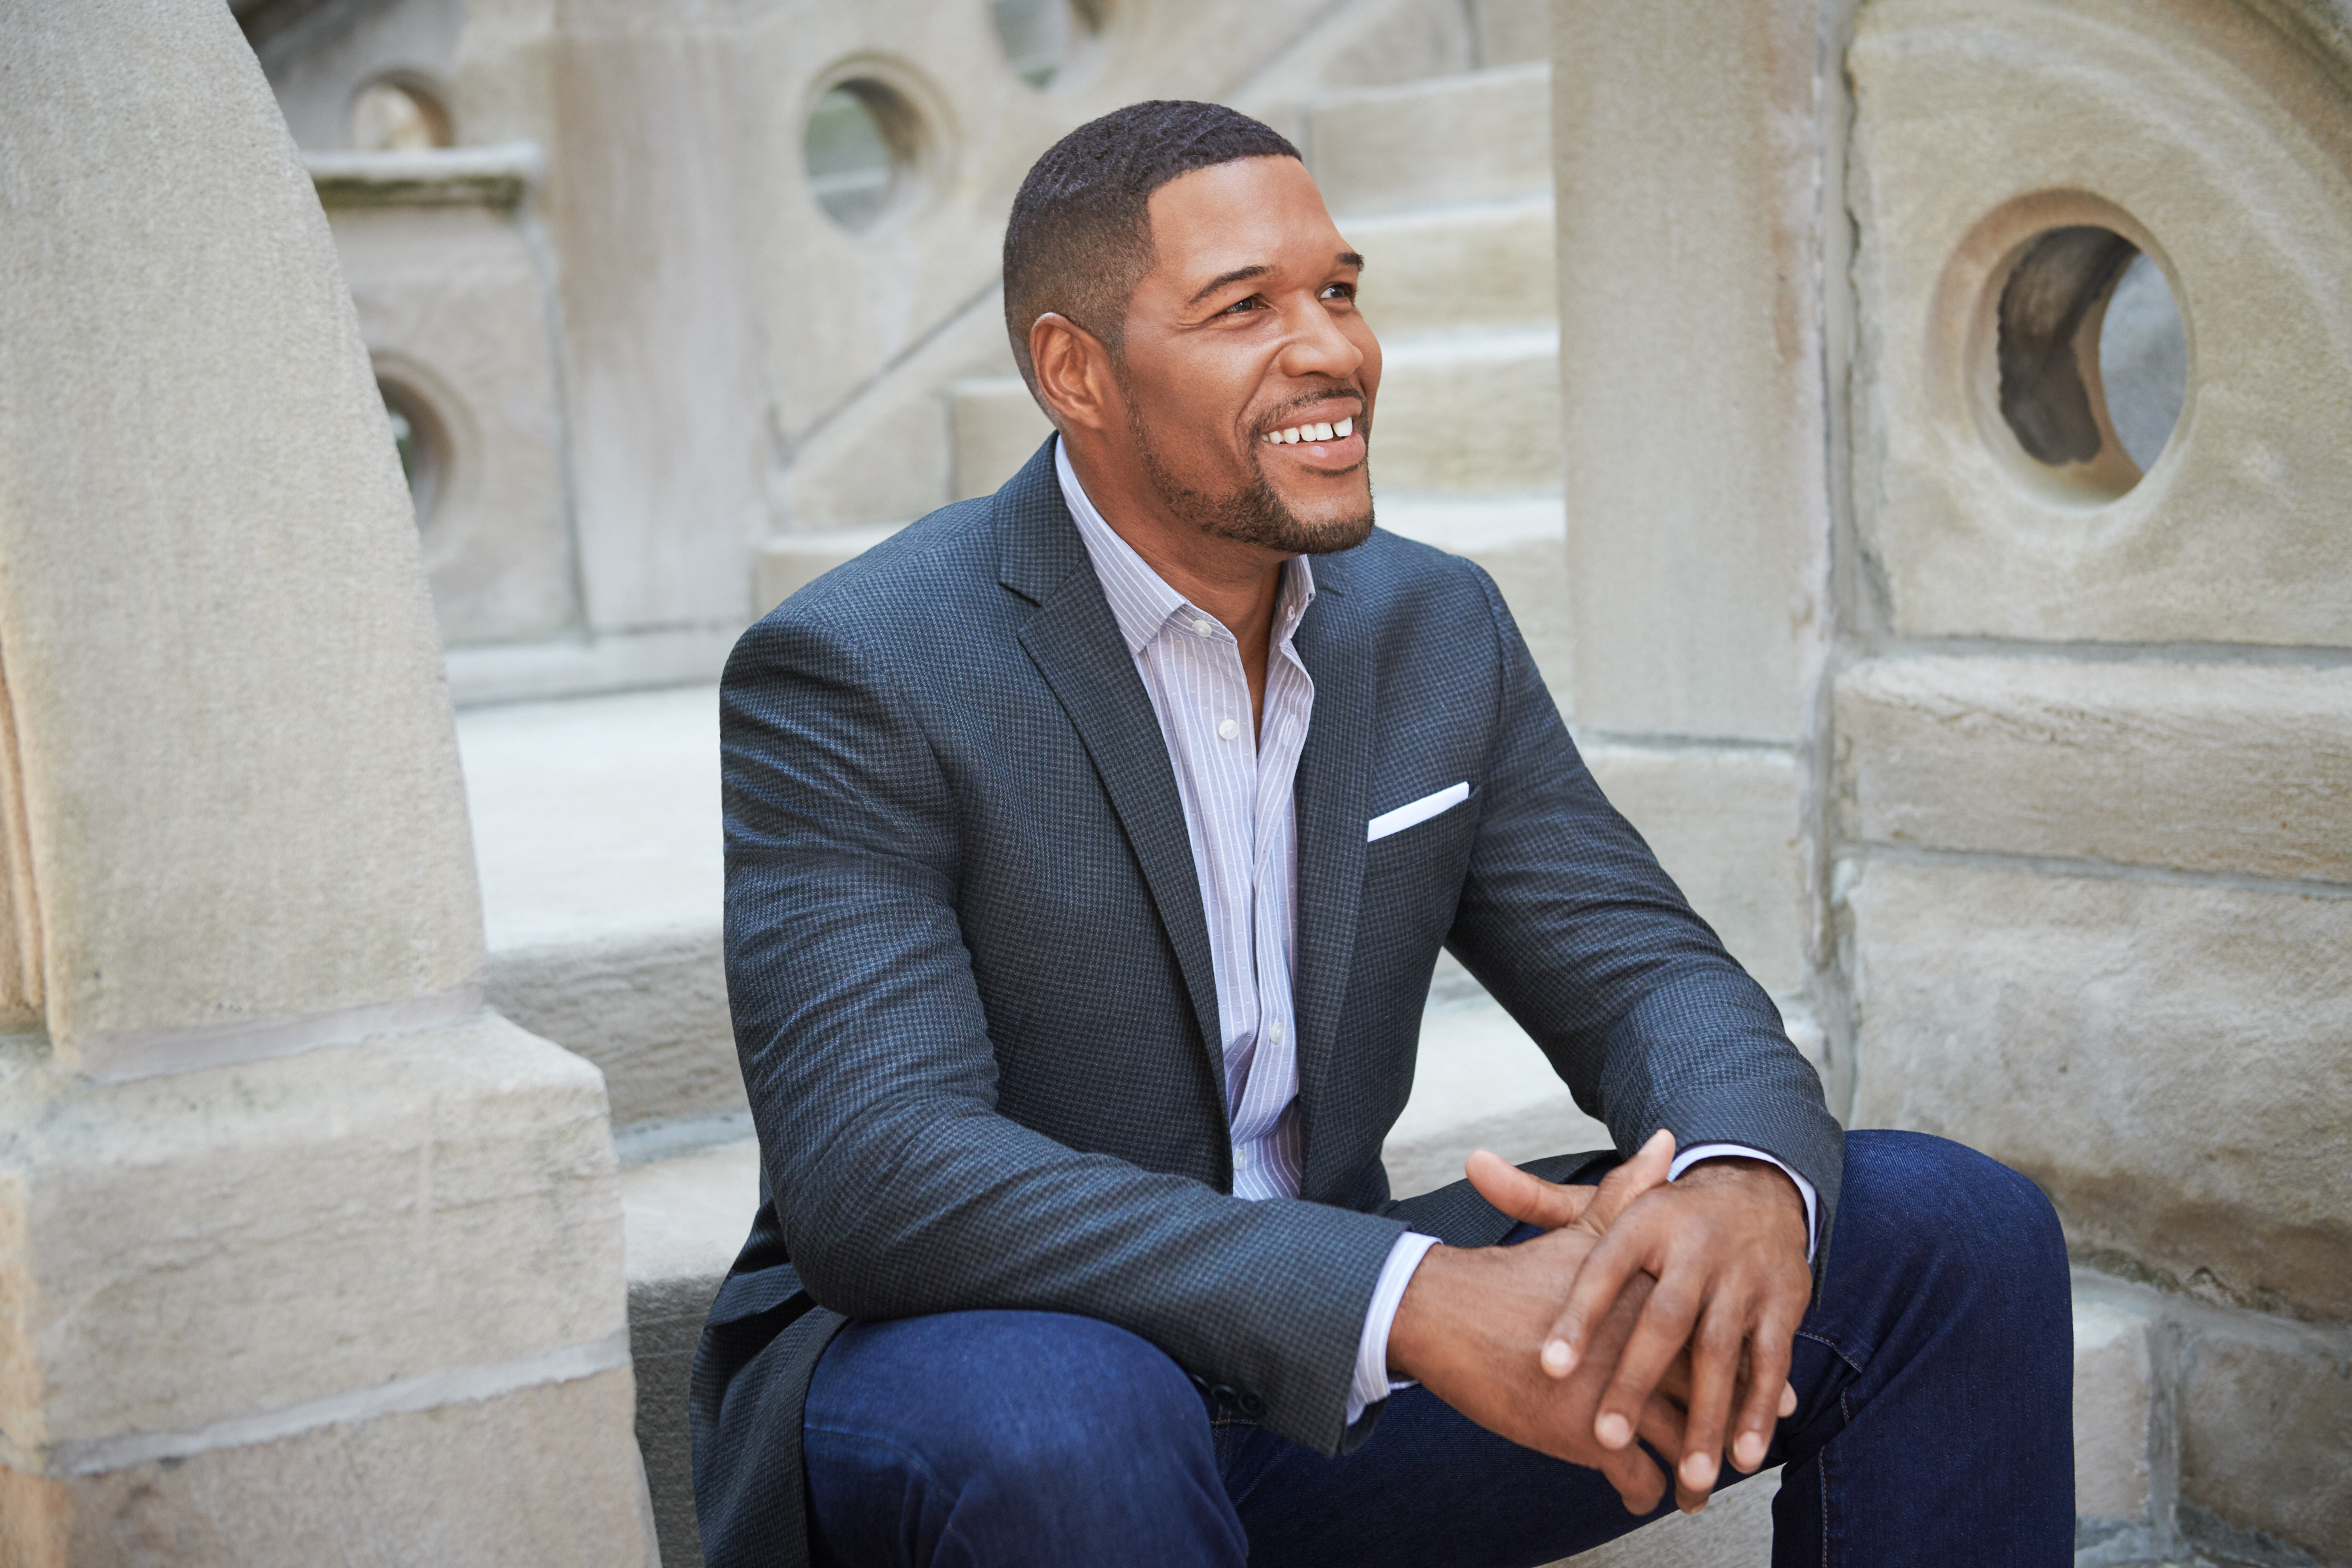 Style Session Michael Strahan Denim Collection Looks Michael Strahan